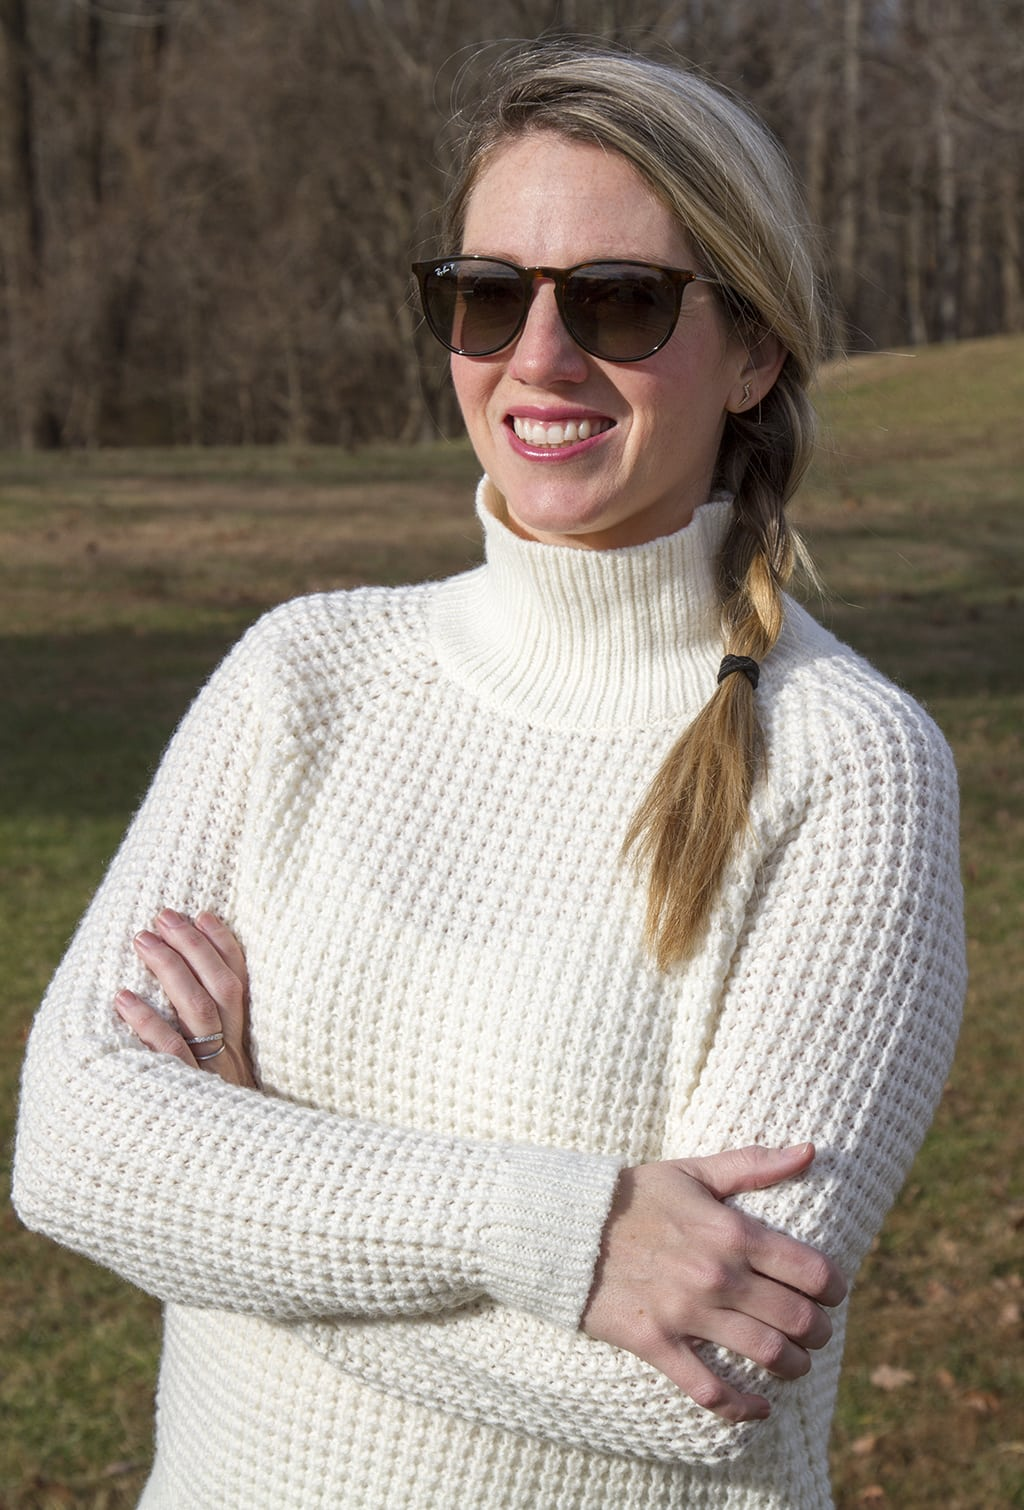 Cream sweater and side braid